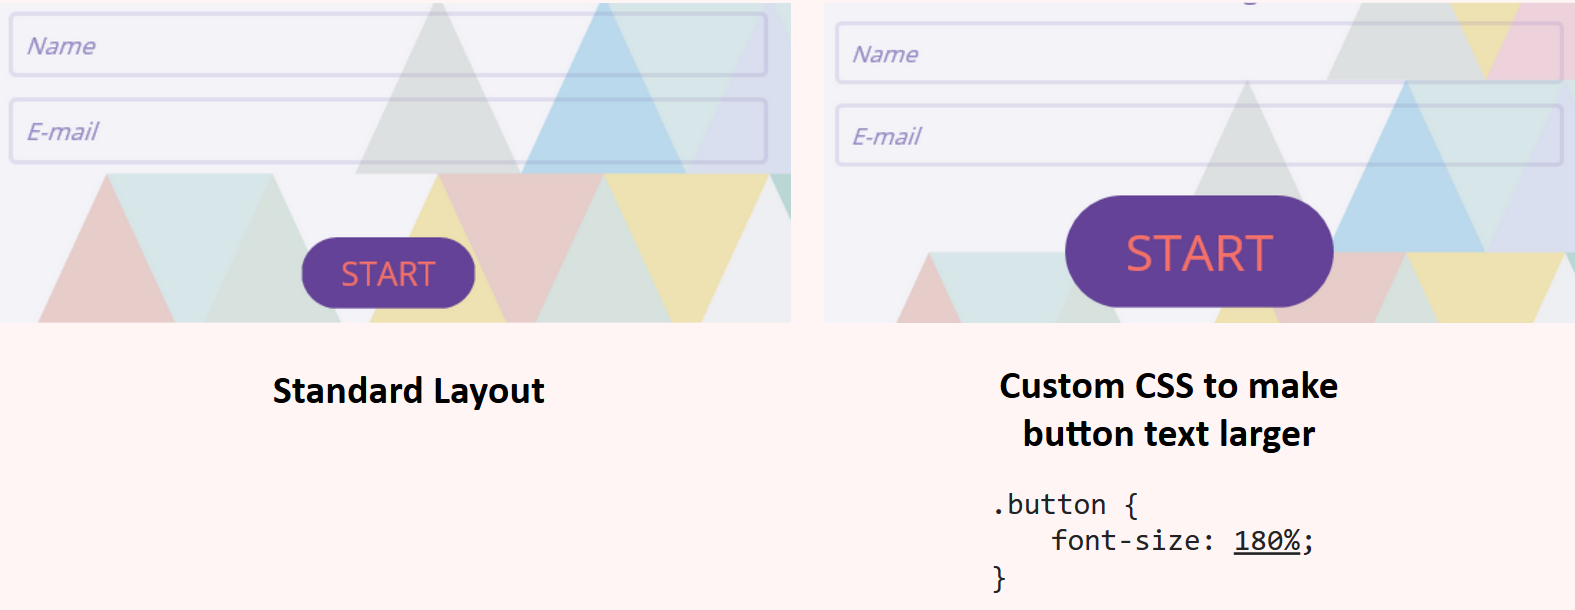 CSS larger button size